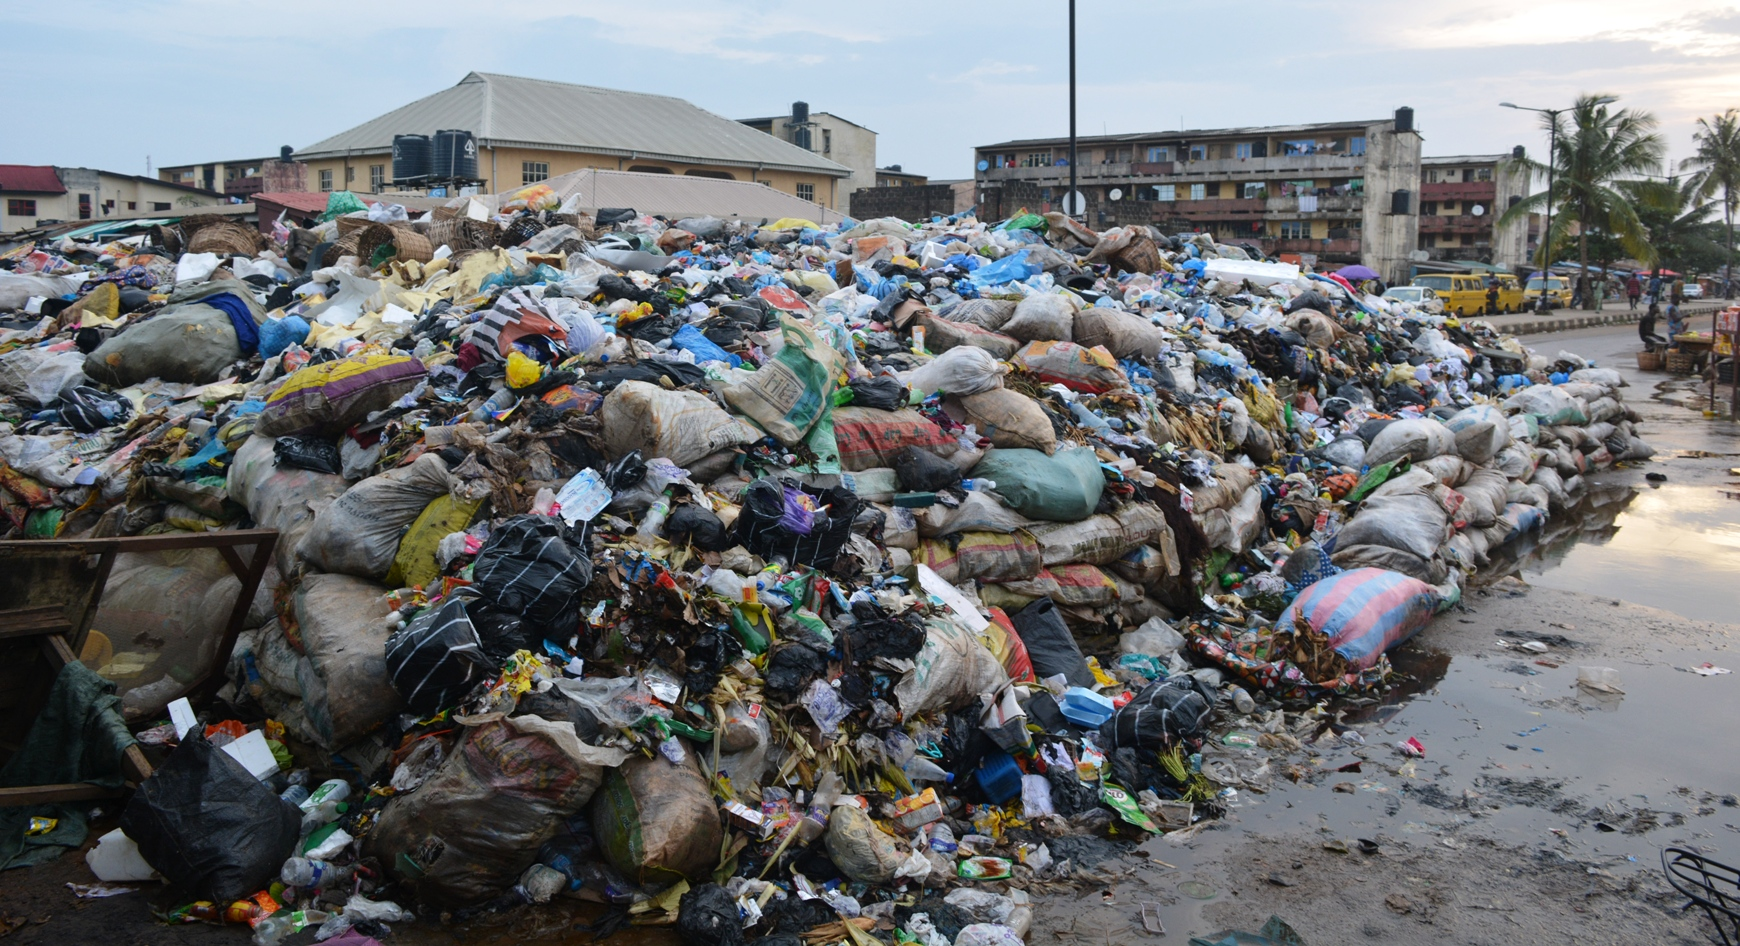 In Photos: Lagos, City of Excellence with a Trashy Problem